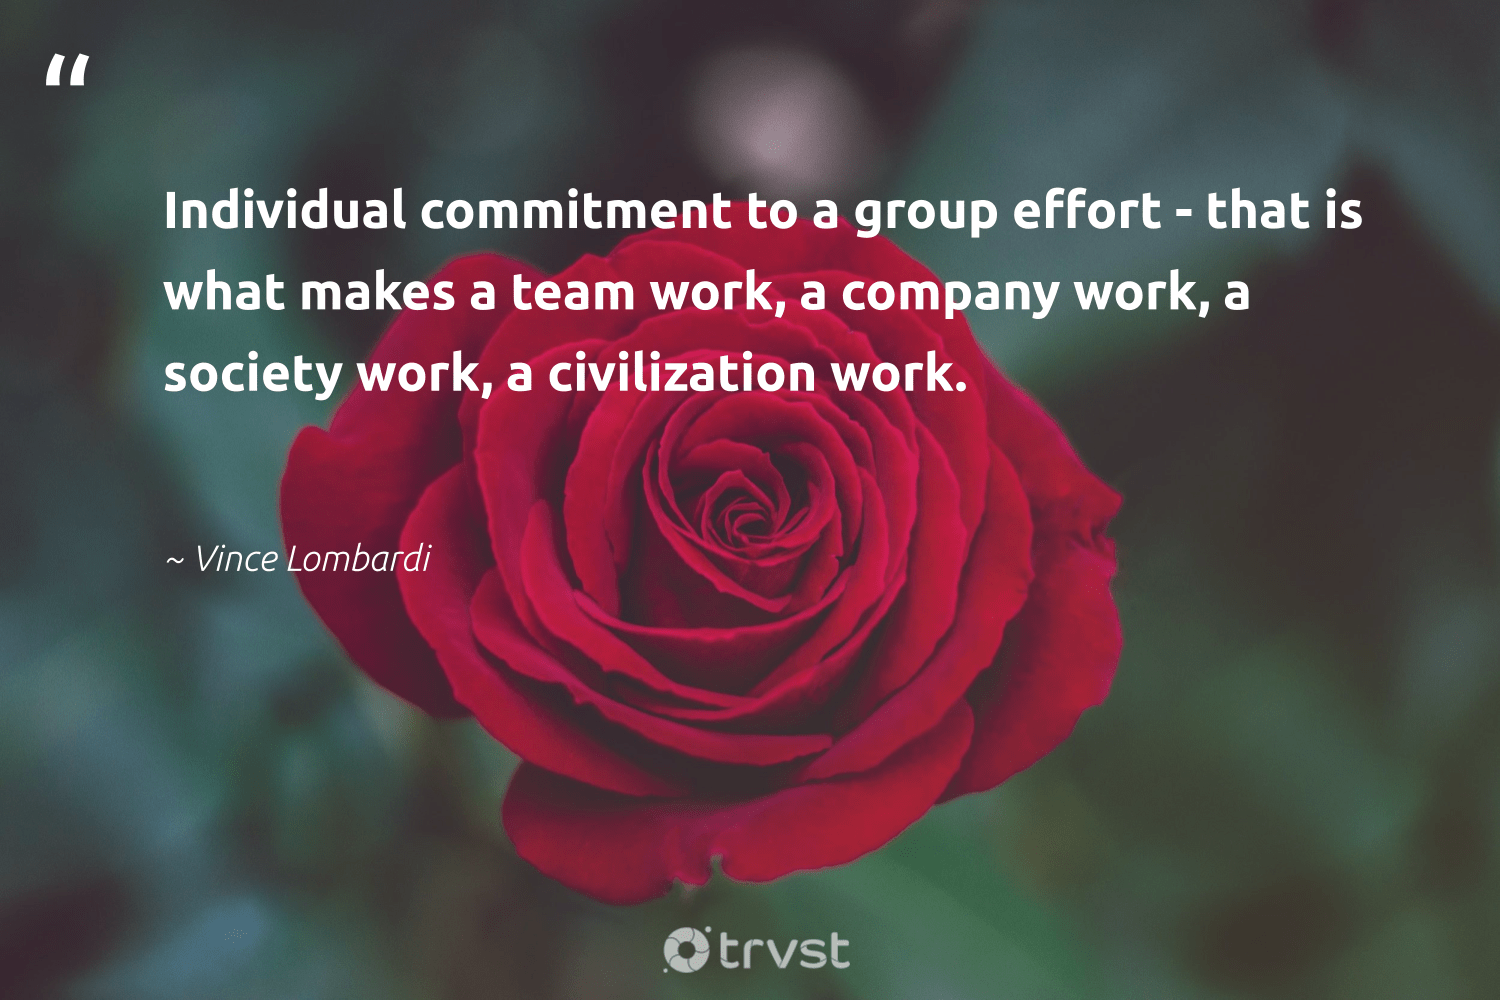 """""""Individual commitment to a group effort - that is what makes a team work, a company work, a society work, a civilization work.""""  - Vince Lombardi #trvst #quotes #society #socialchange #bethechange #communities #gogreen #workingtogether #dotherightthing #betterplanet #dosomething #dogood"""